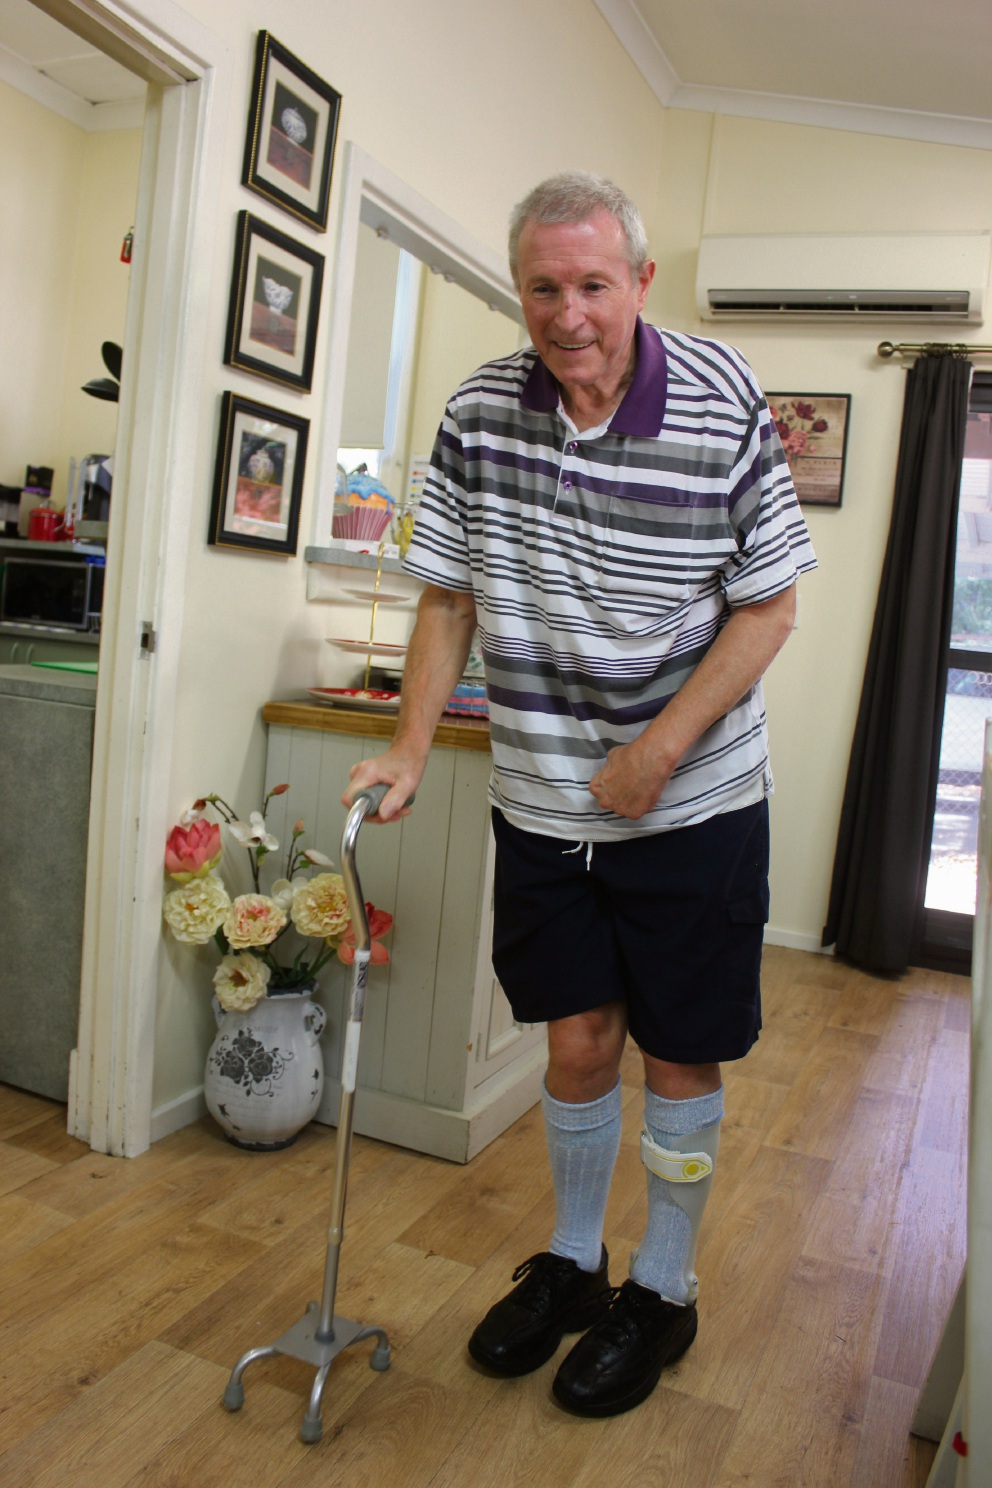 Stratton stroke sufferer now a picture of positivity